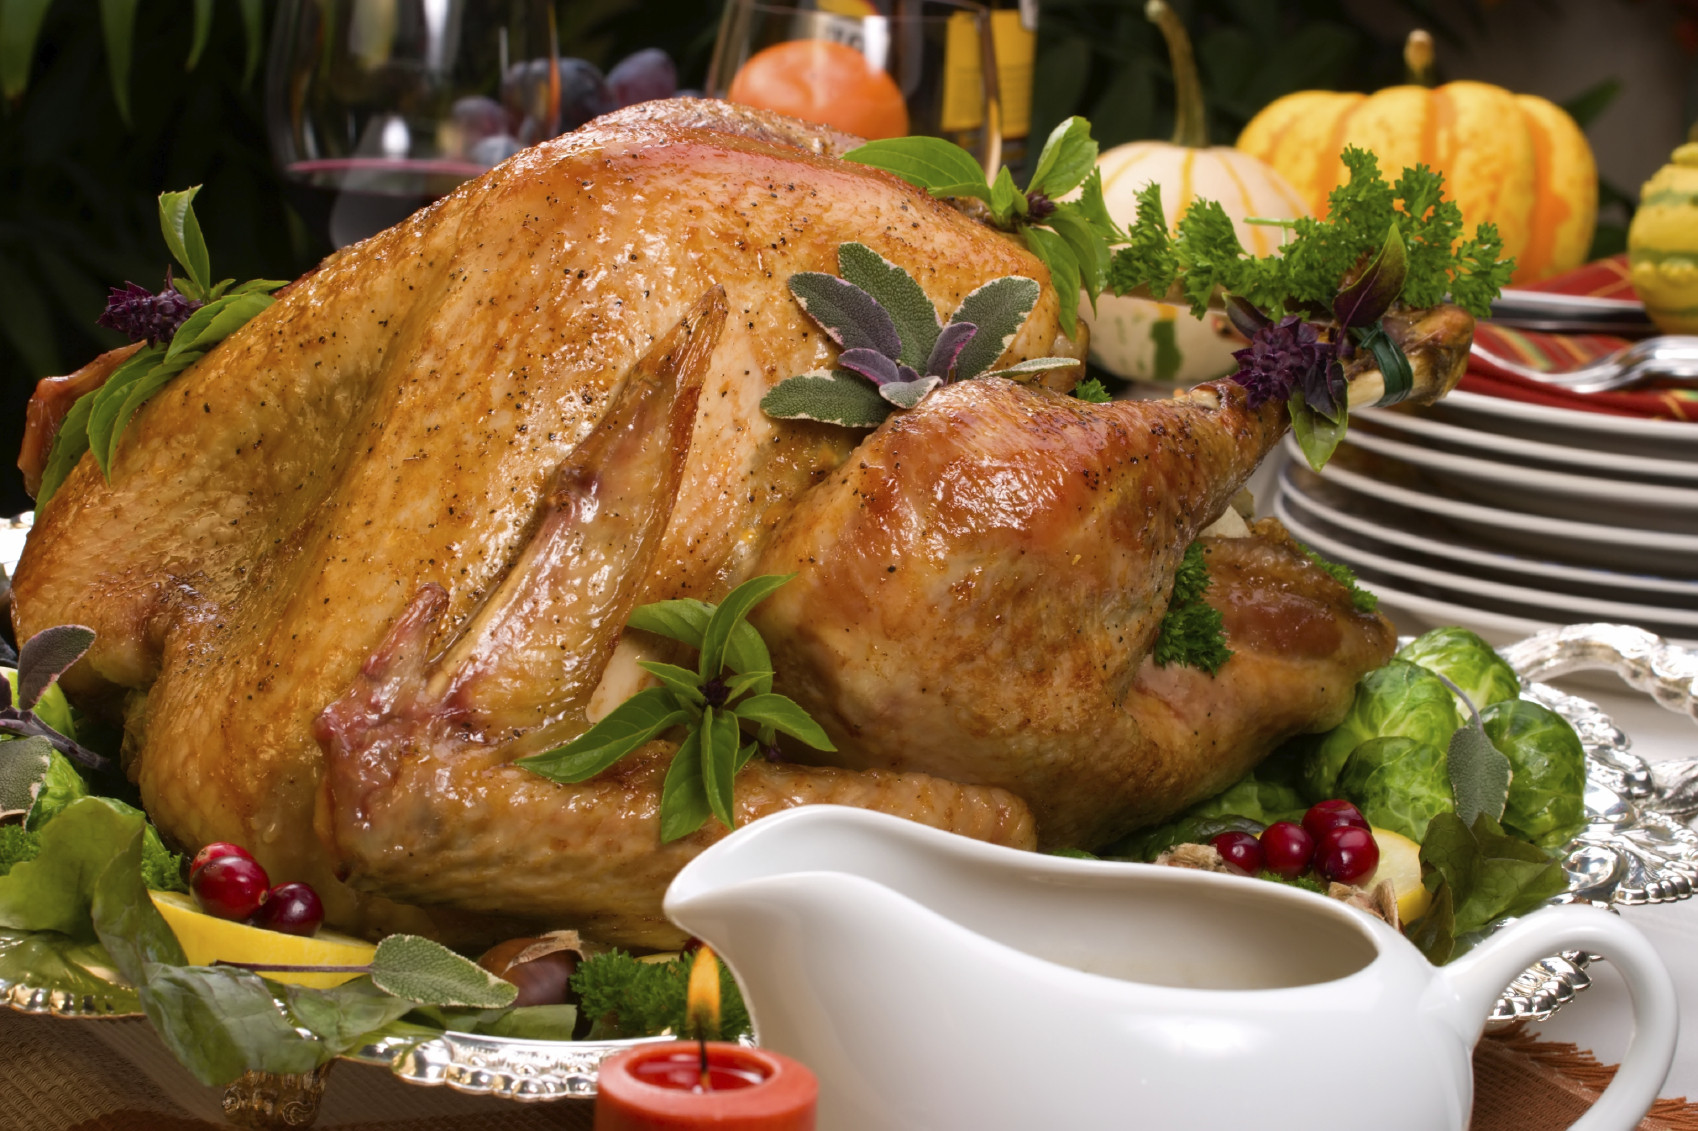 Prepared Thanksgiving Turkey  Tips for preparing your holiday turkey – News from